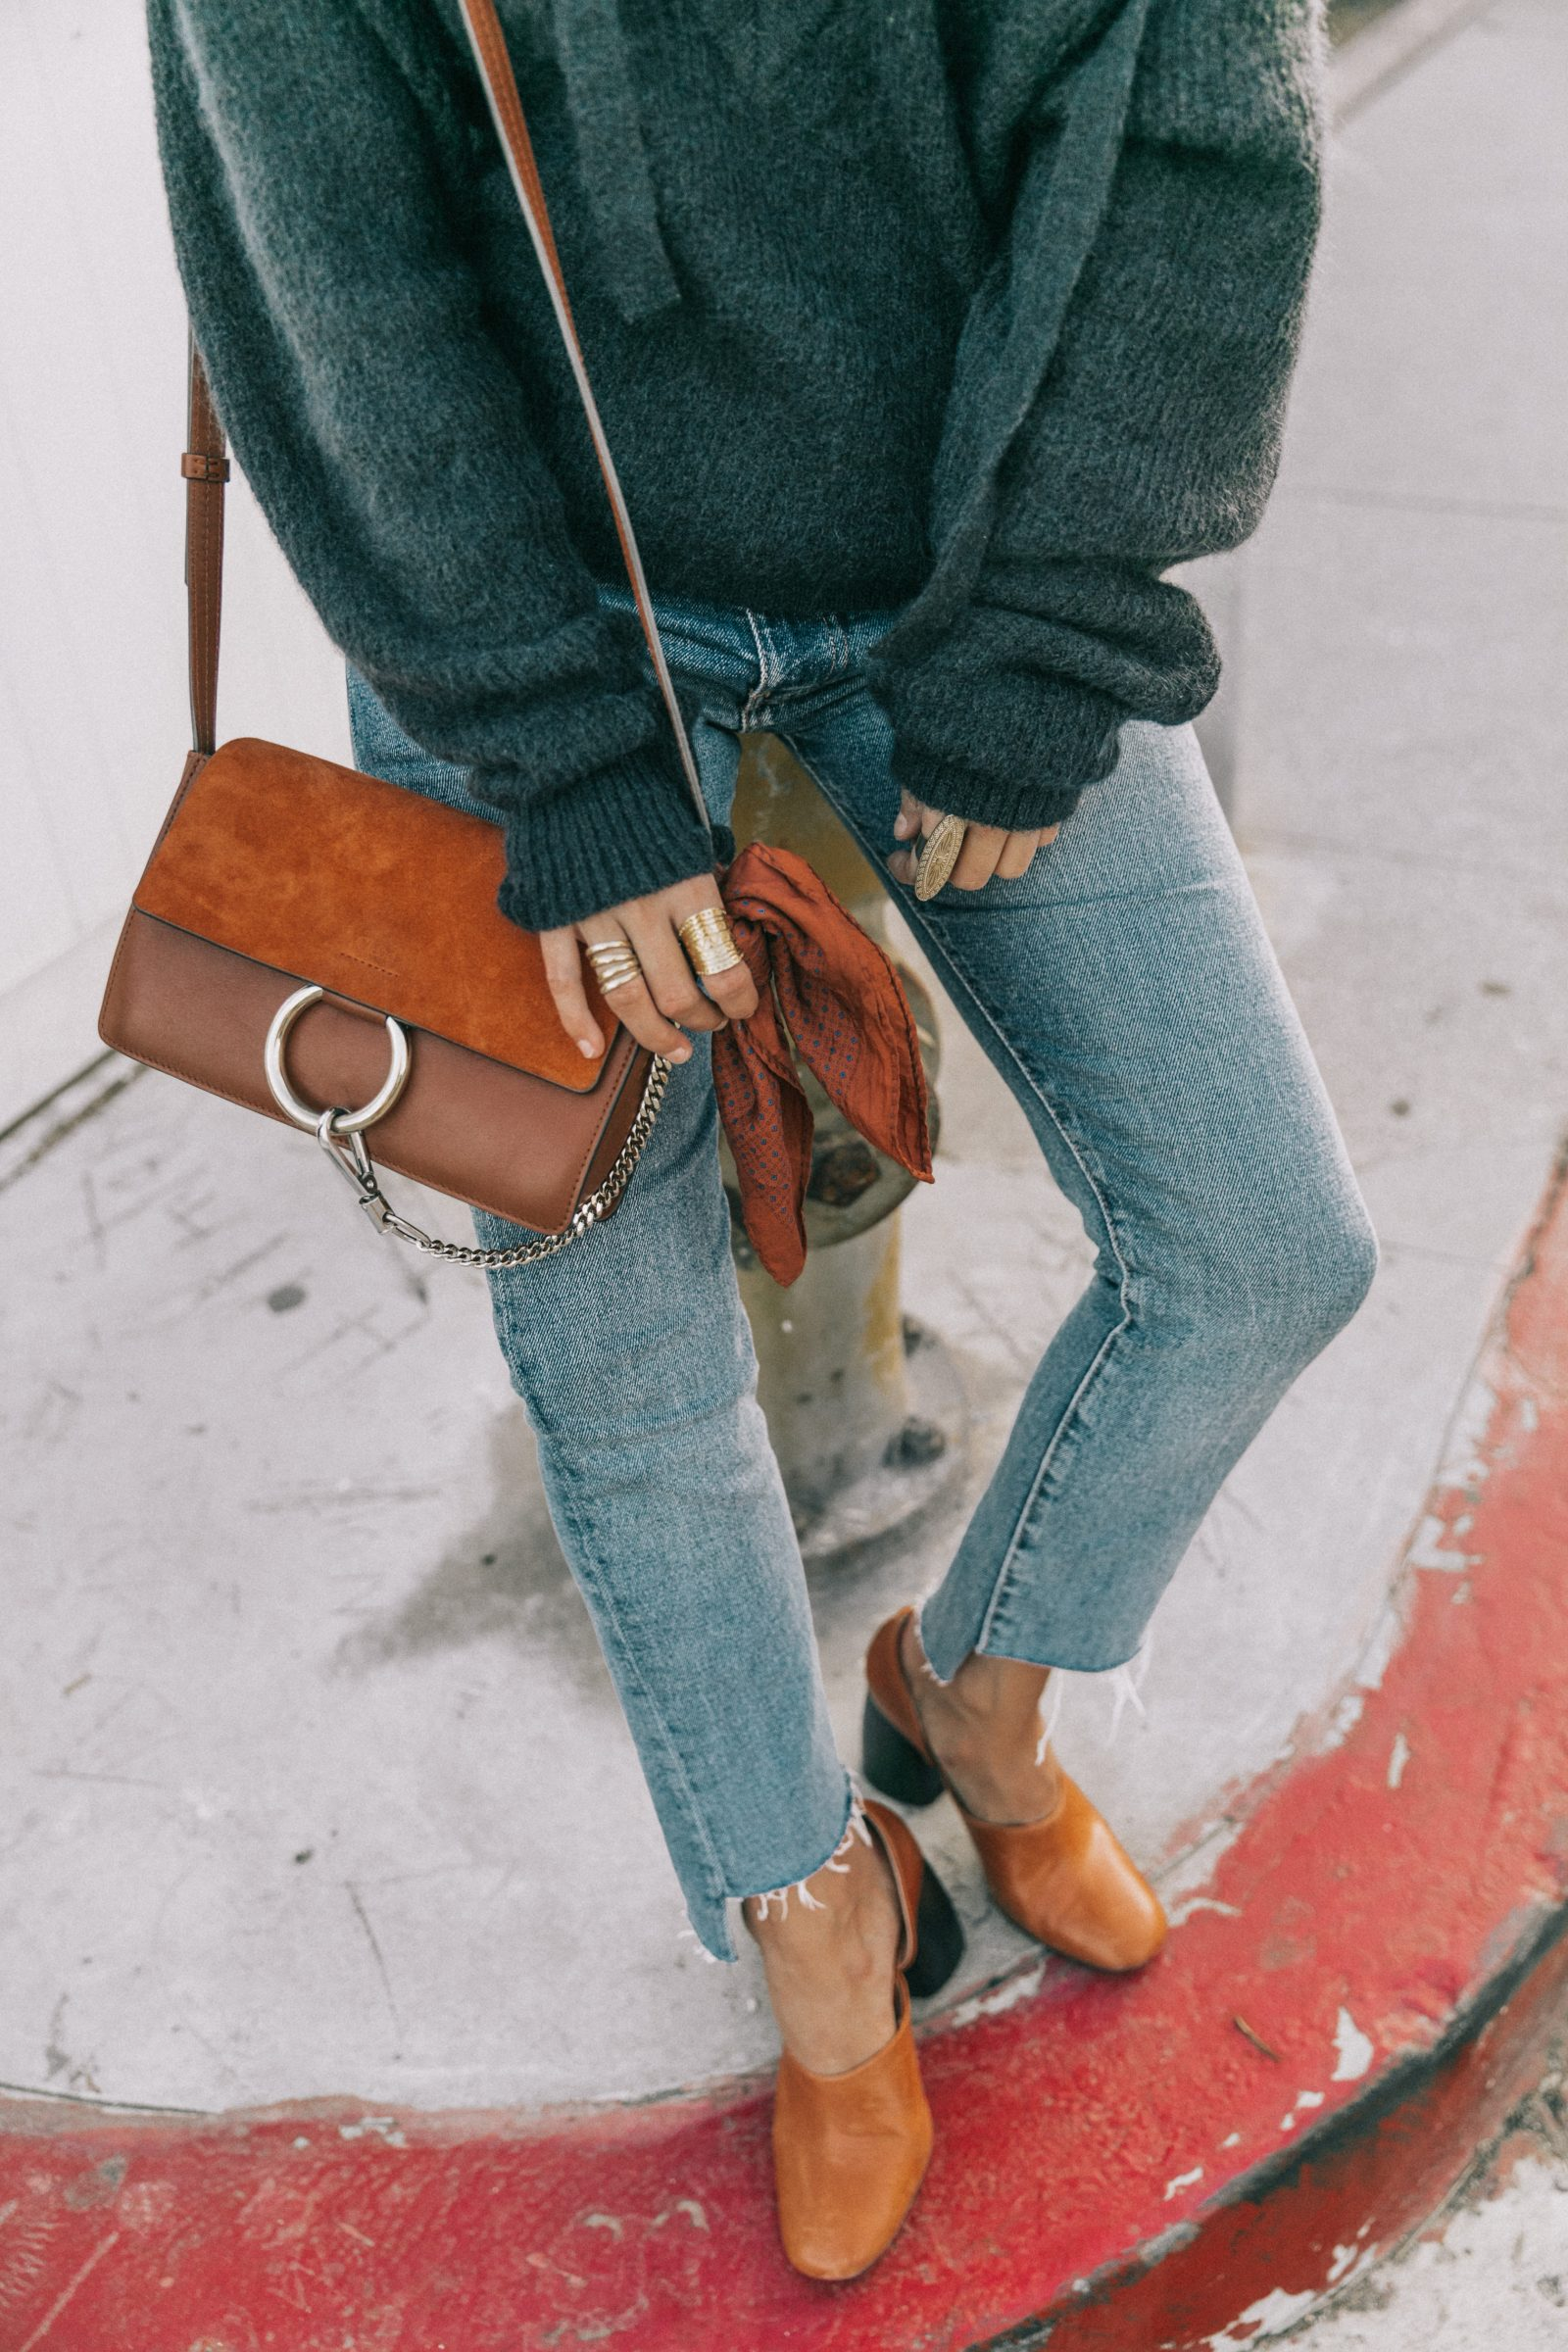 venice_beach-knotted_jumper-levis_jeans-chloe_bag-mango_shoes-horn_necklaces-outfit-street_style-los_angeles-collage_vintage-156